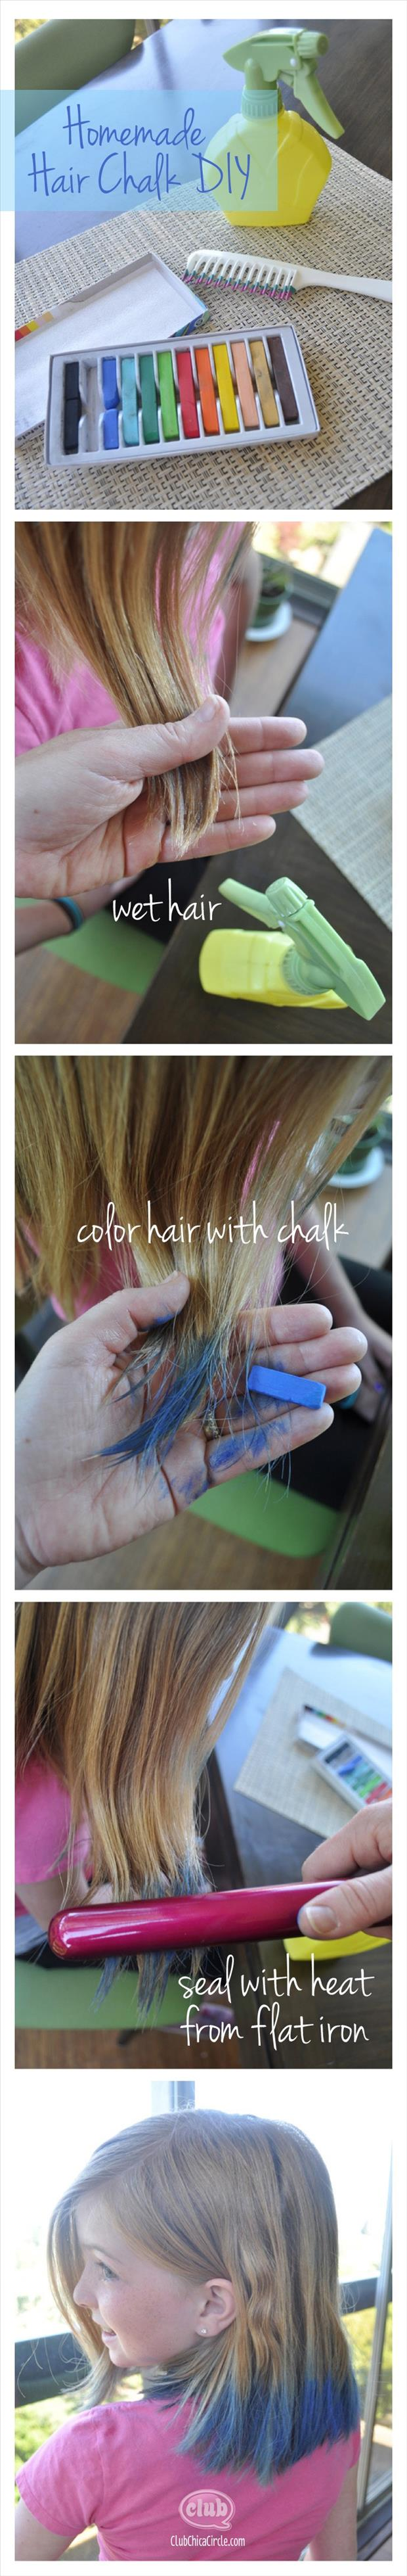 color hair with chalk craft ideas